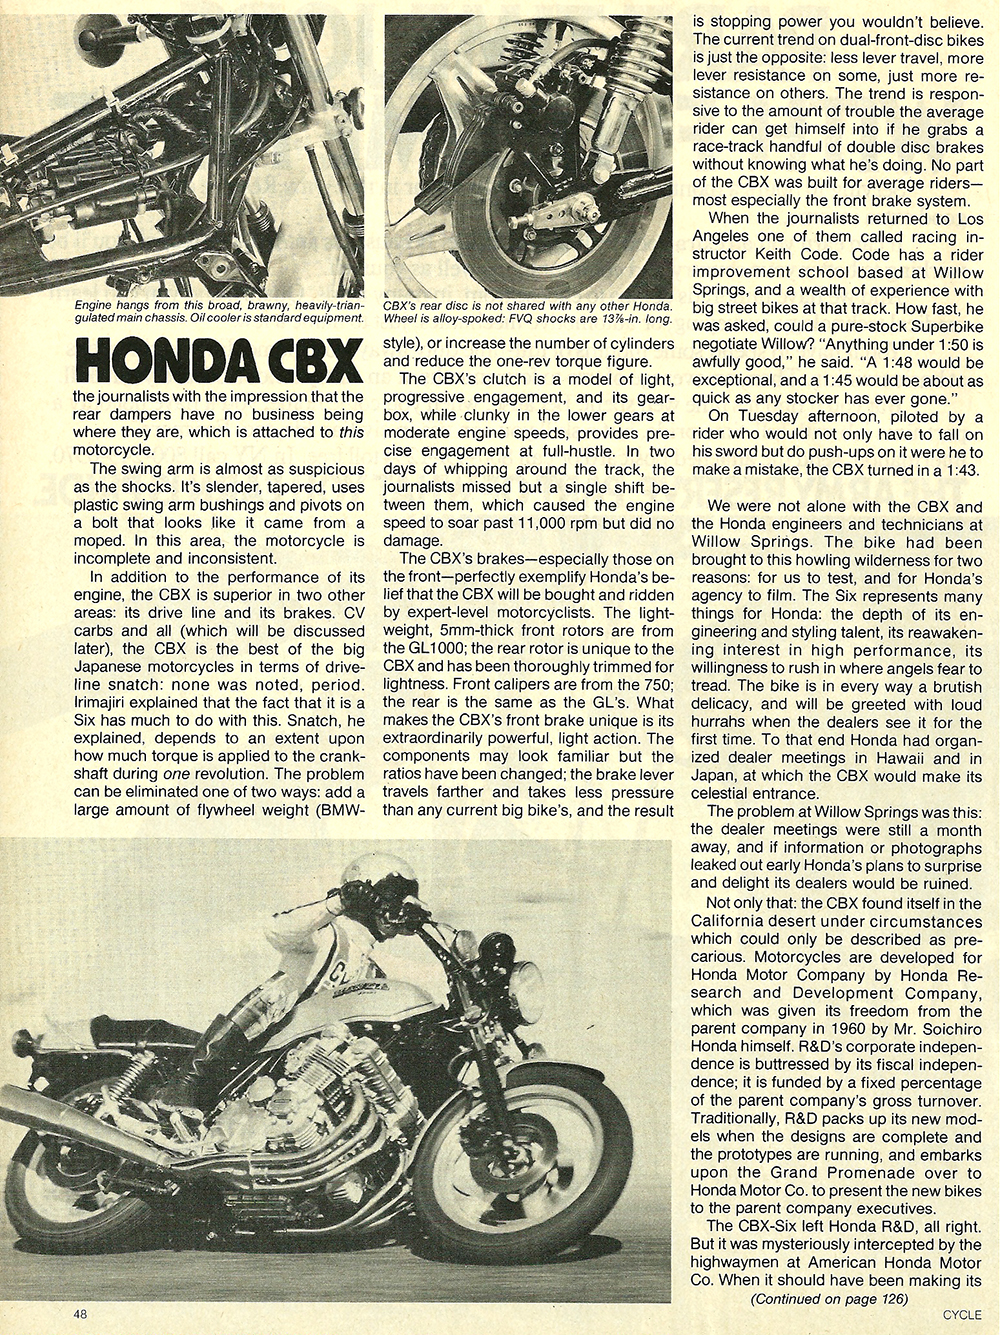 1978 Honda CBX Super Sport road test 12.jpg